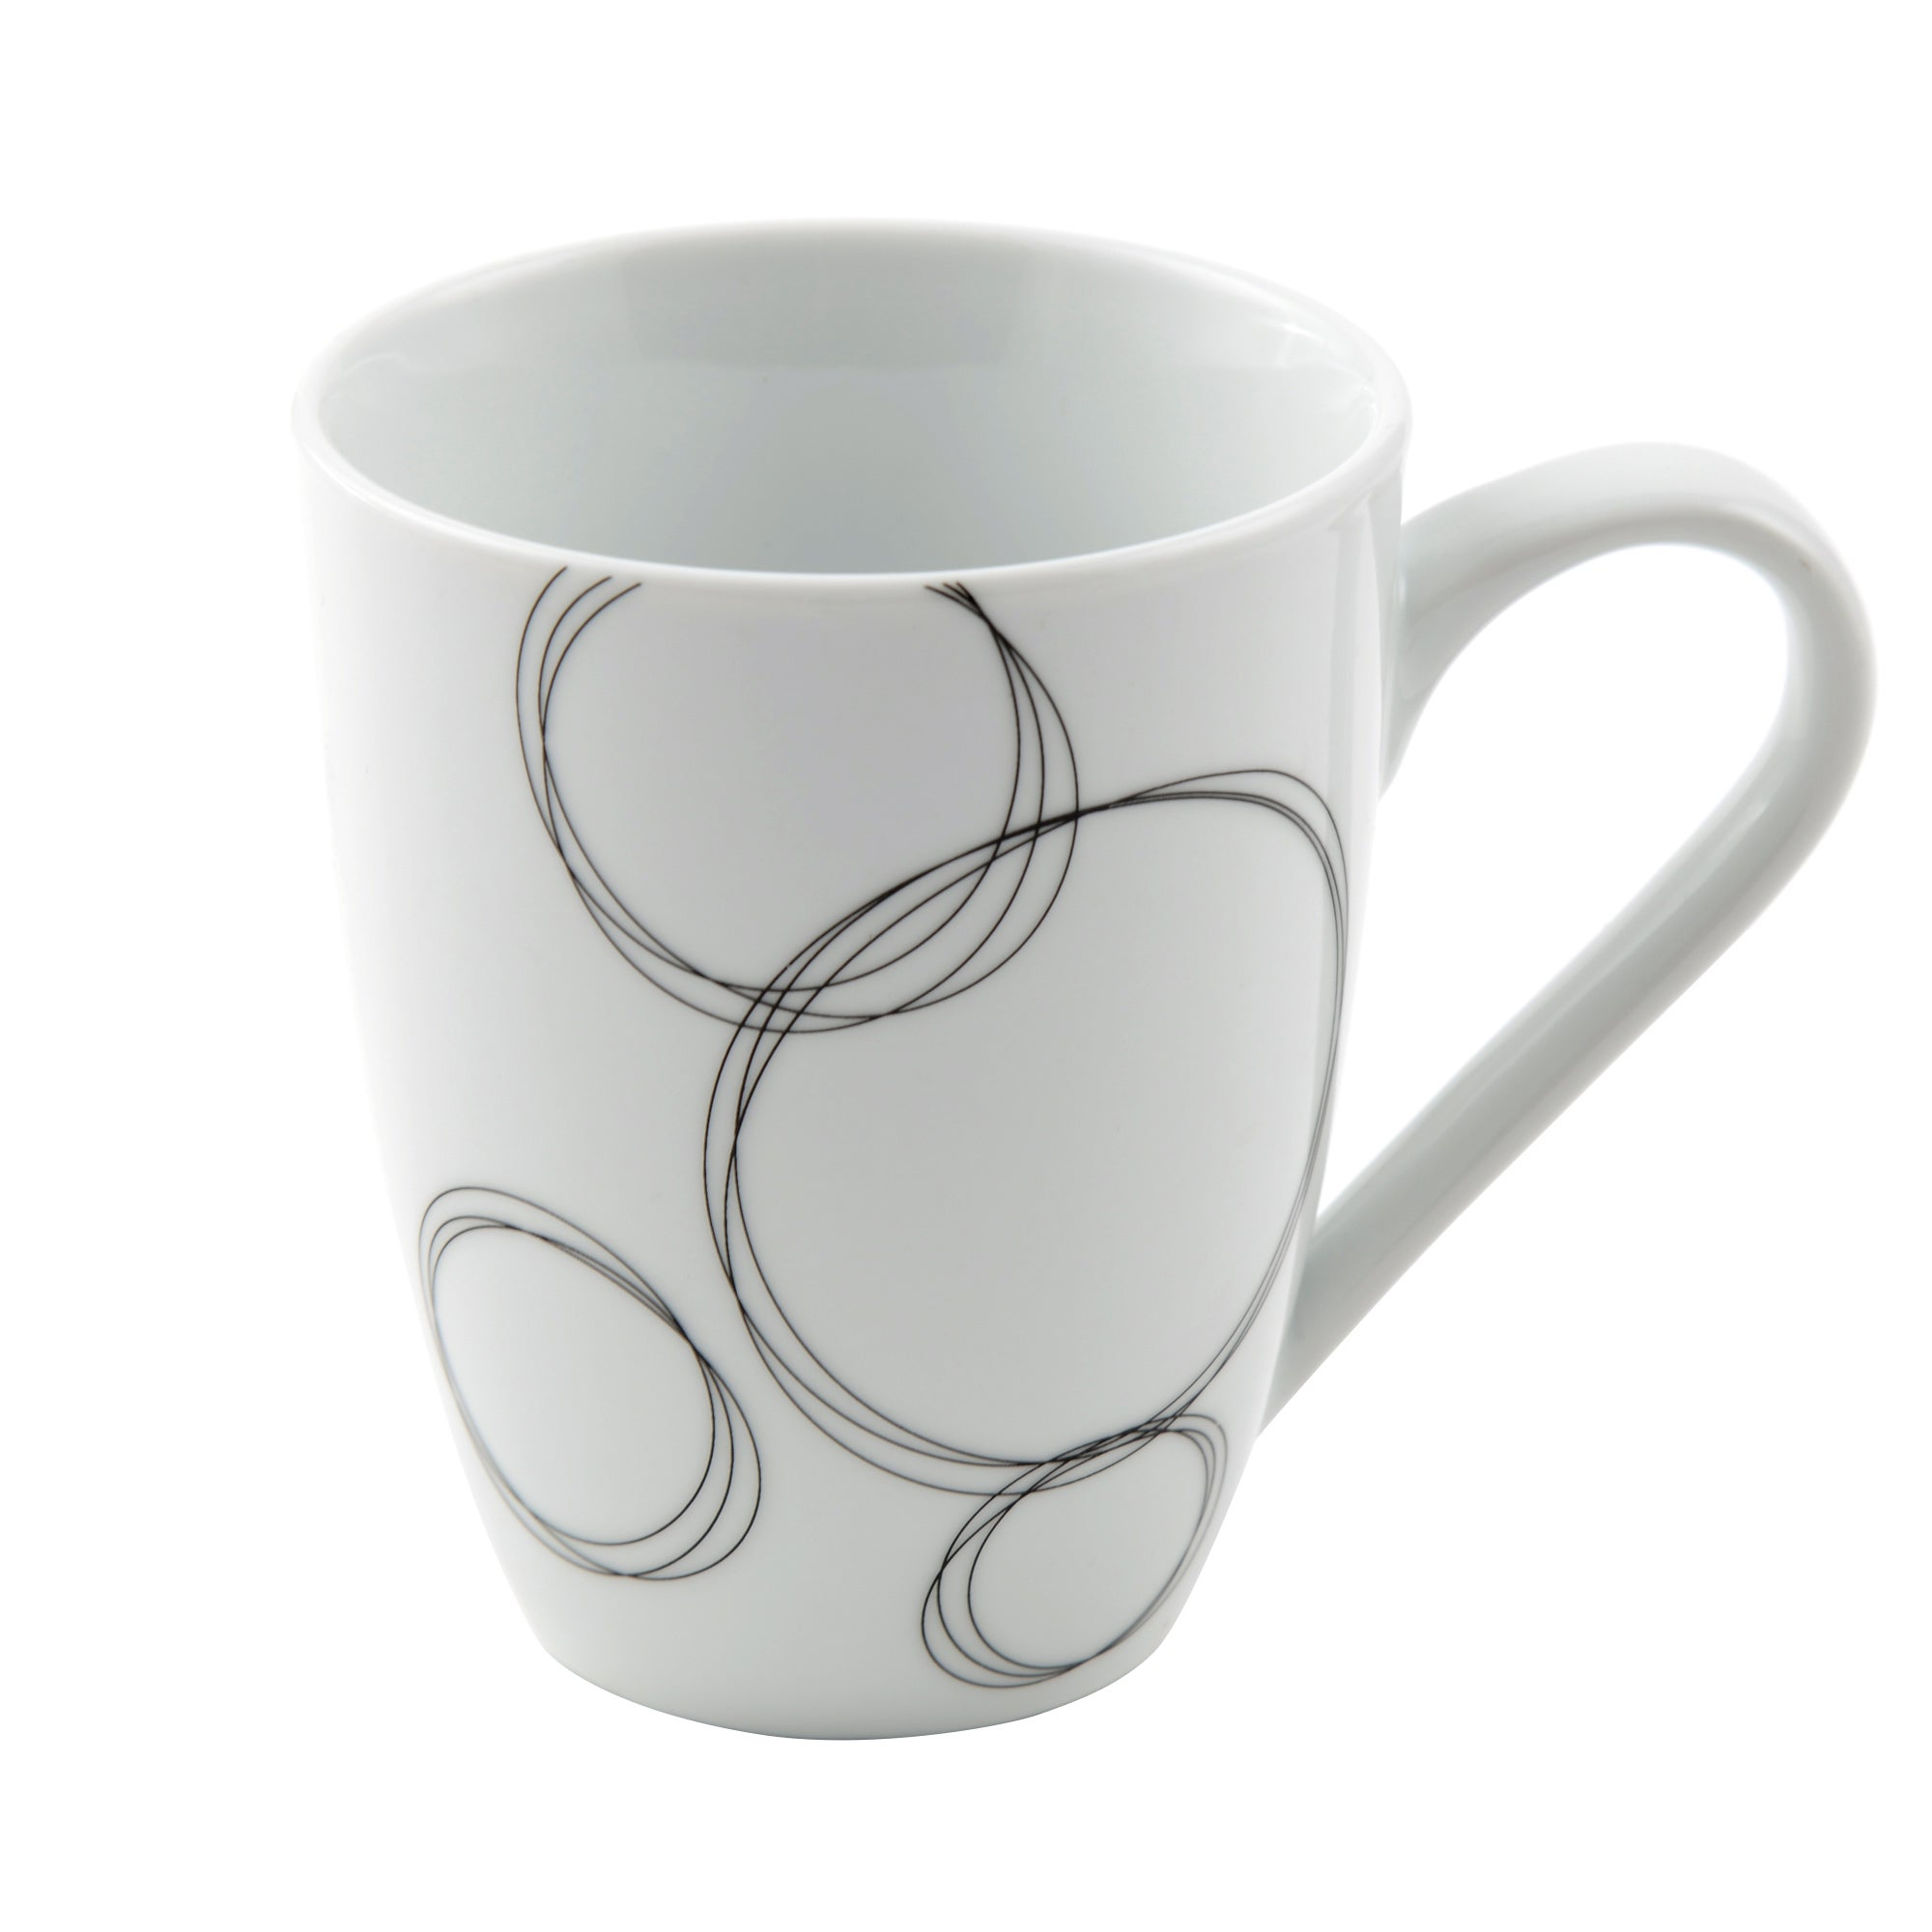 Ellipse Collection Mug